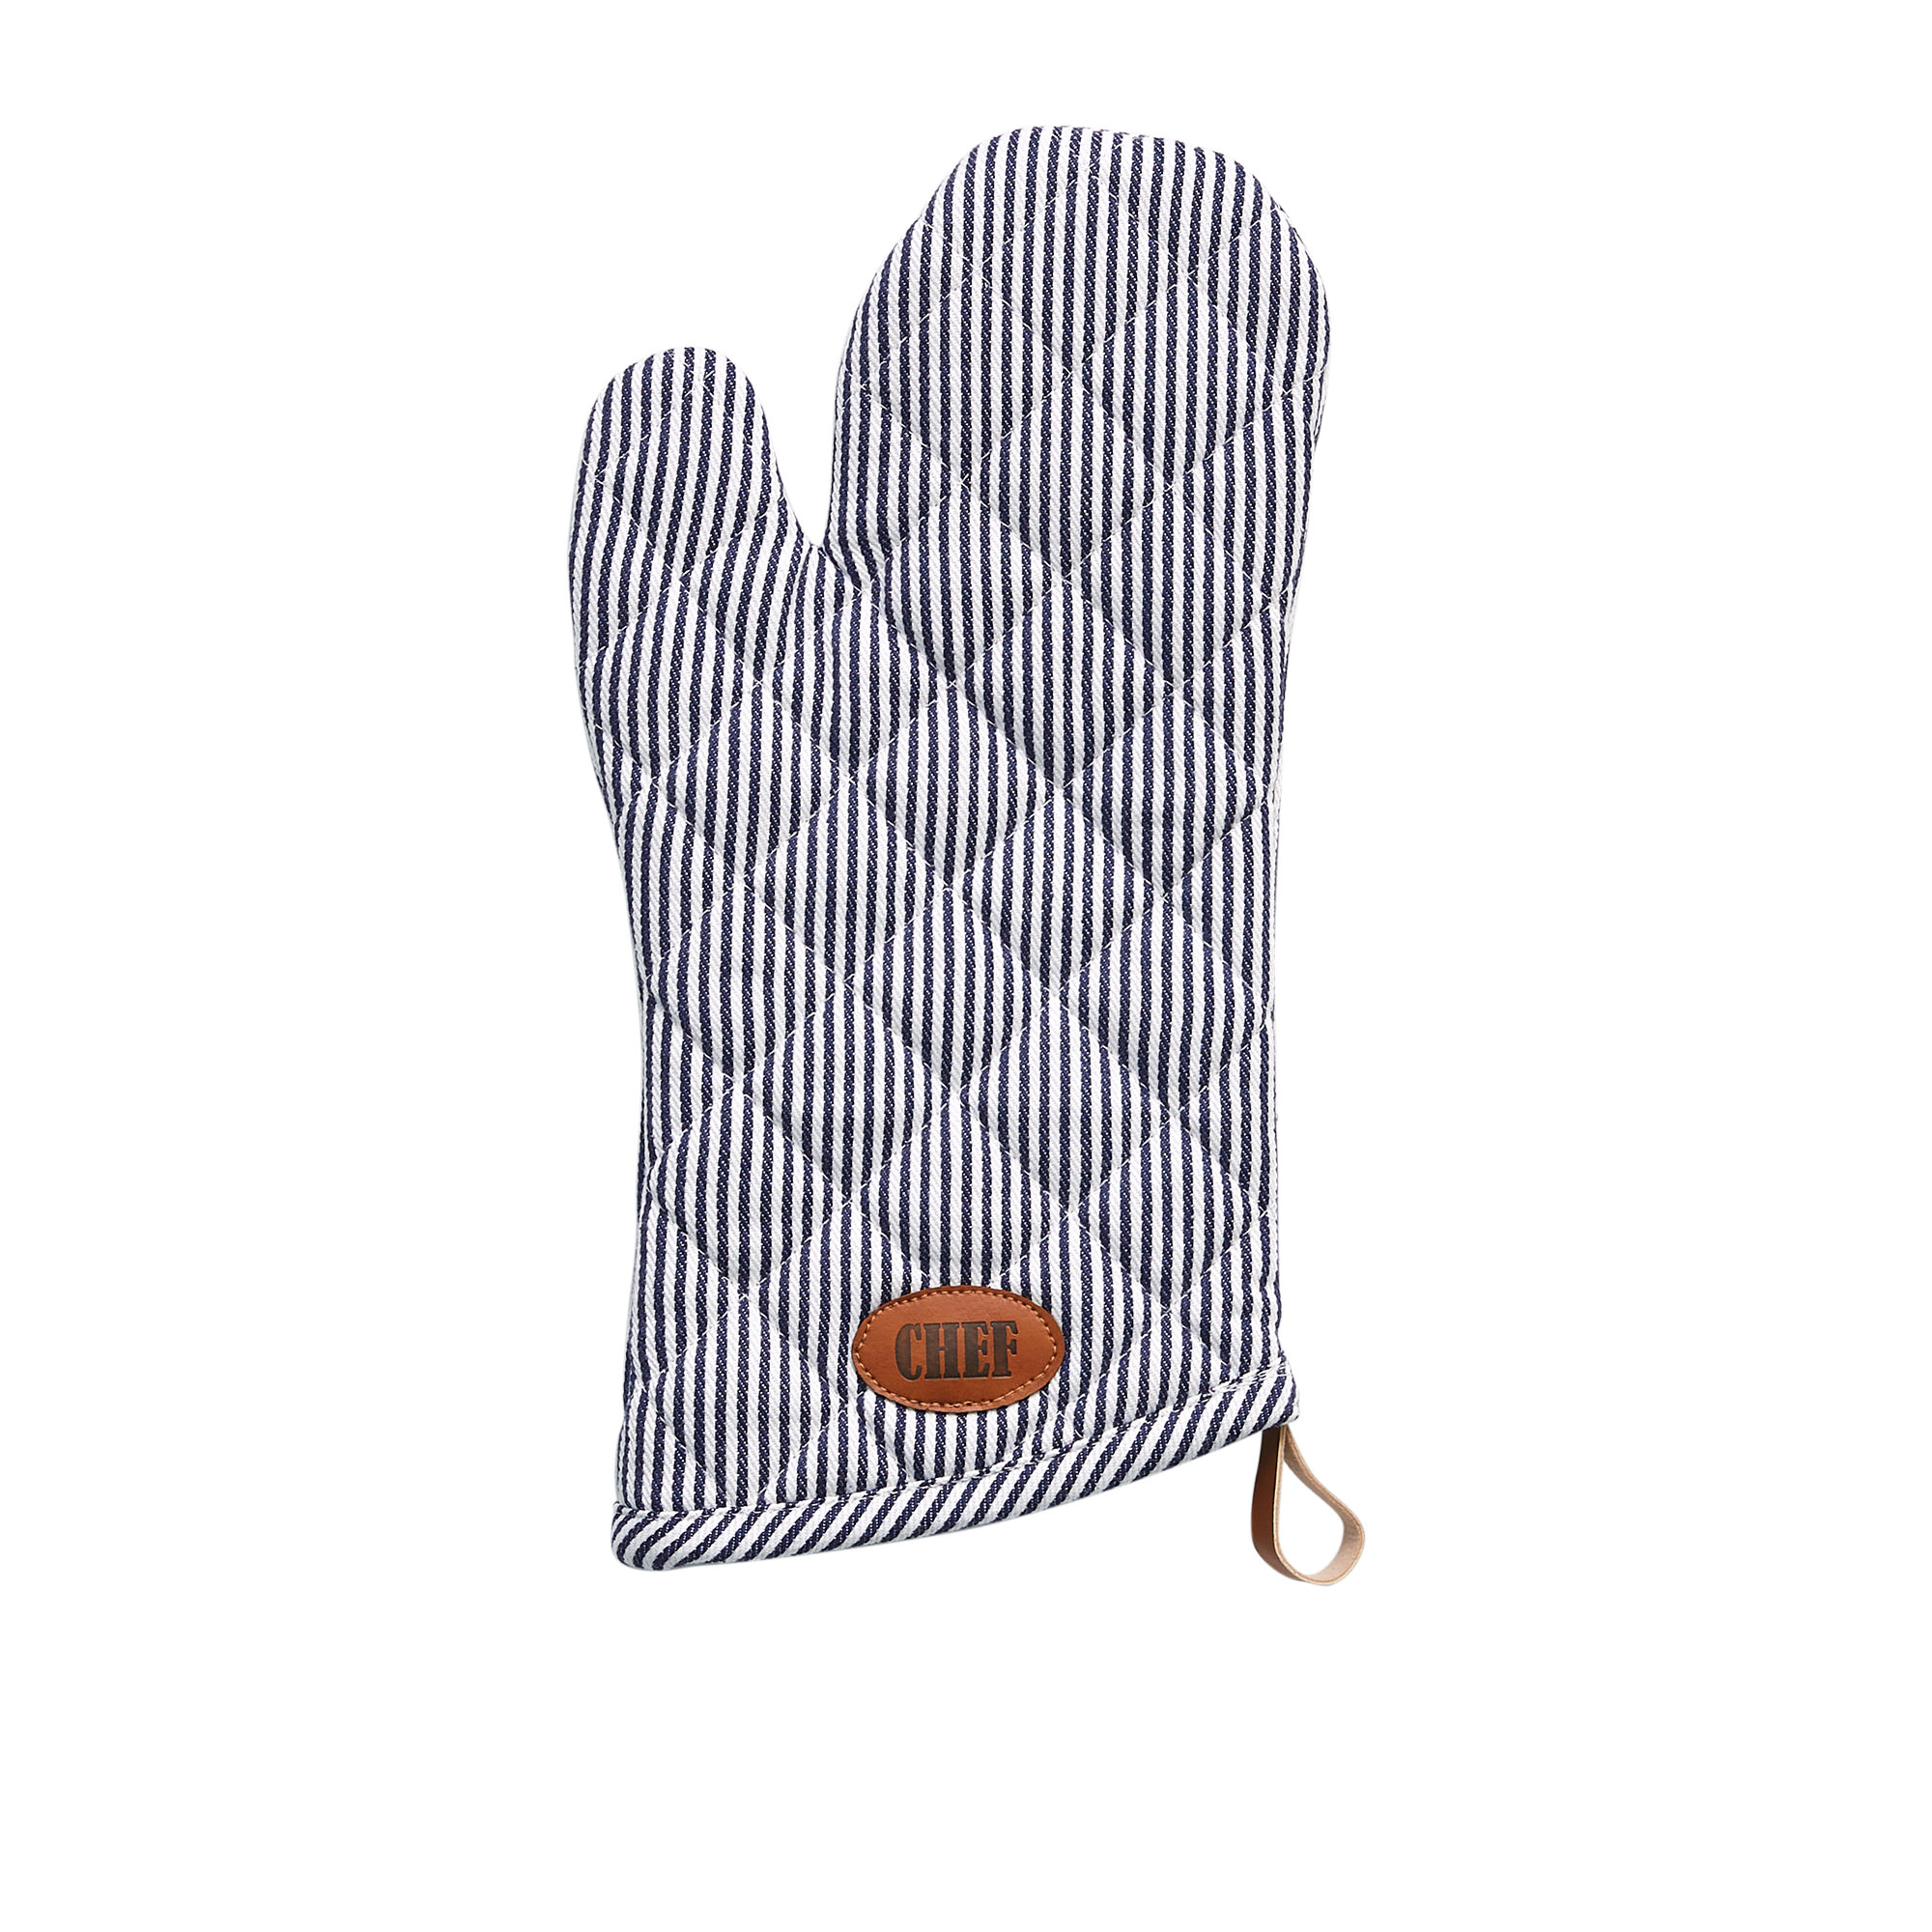 Salisbury & Co Chef Oven Glove Navy Blue